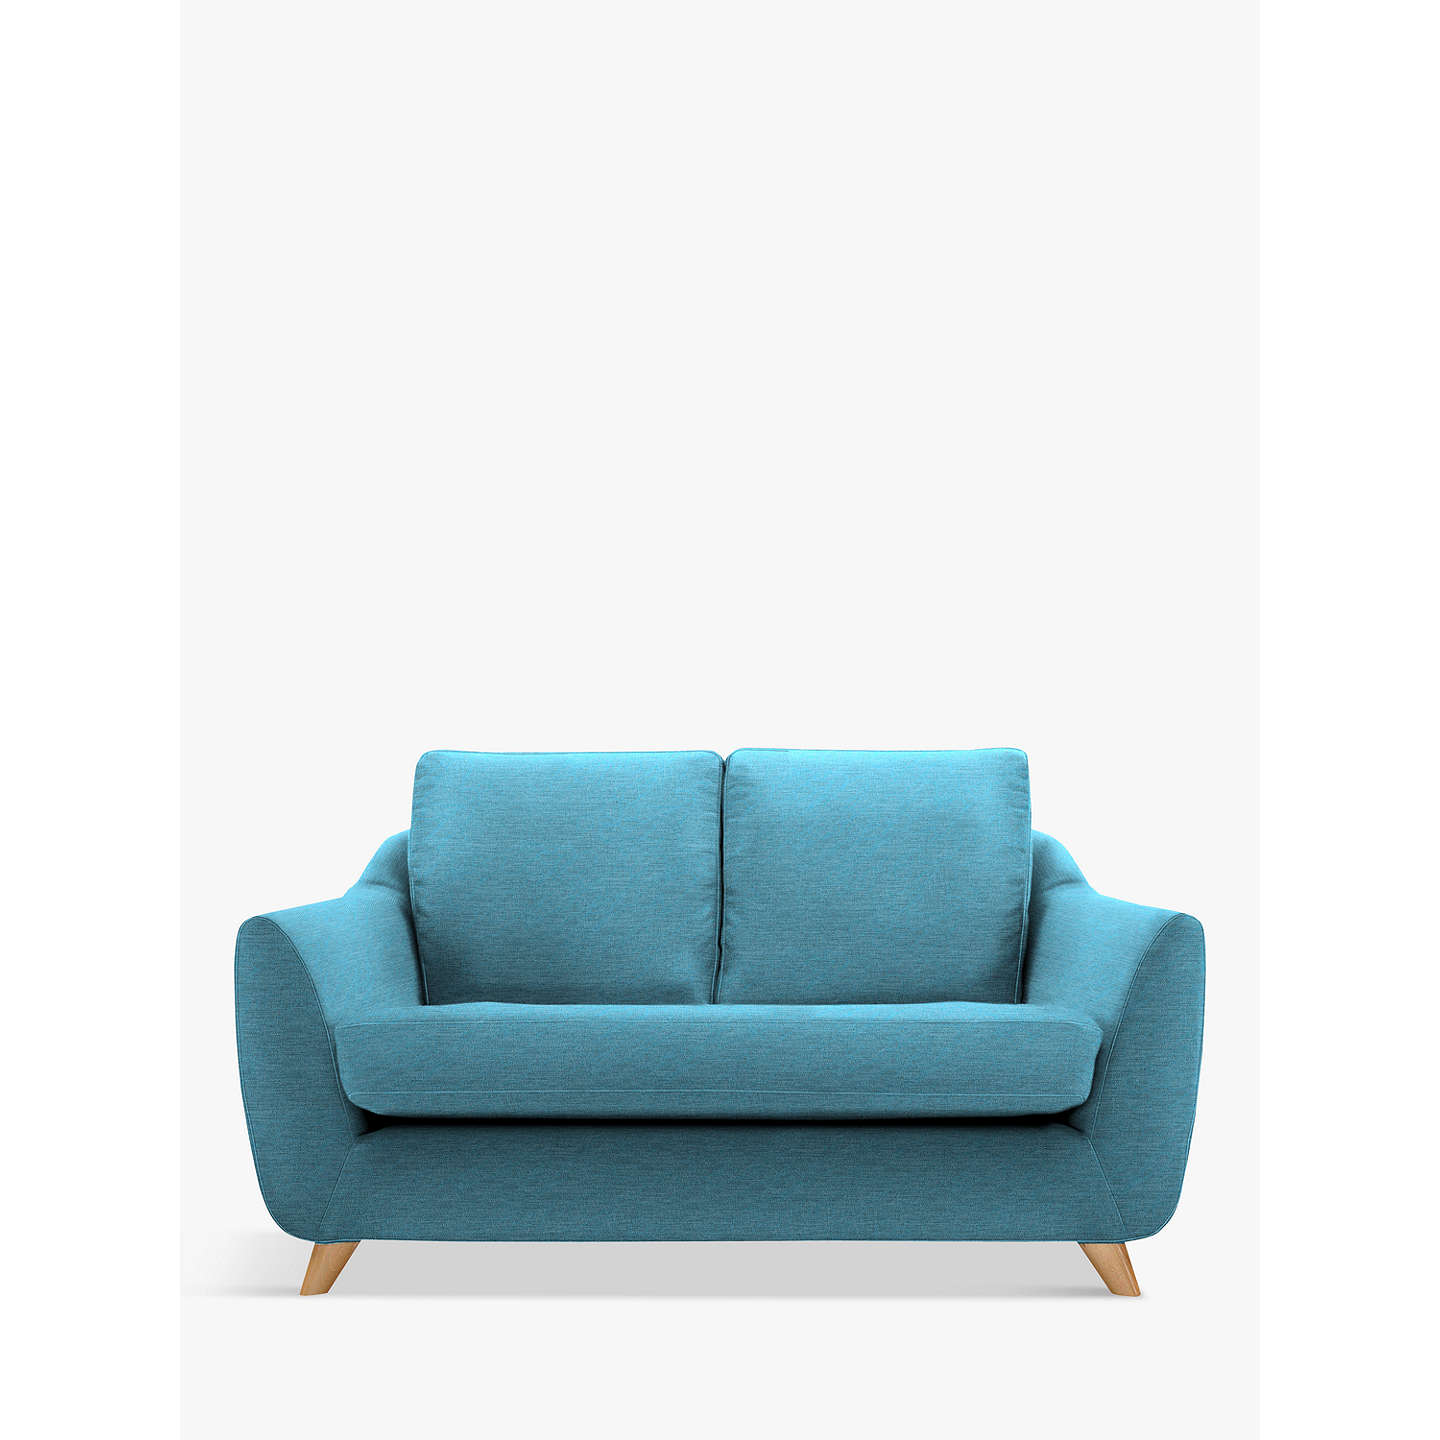 G plan vintage the sixty seven small 2 seater sofa at john for Small blue sofa